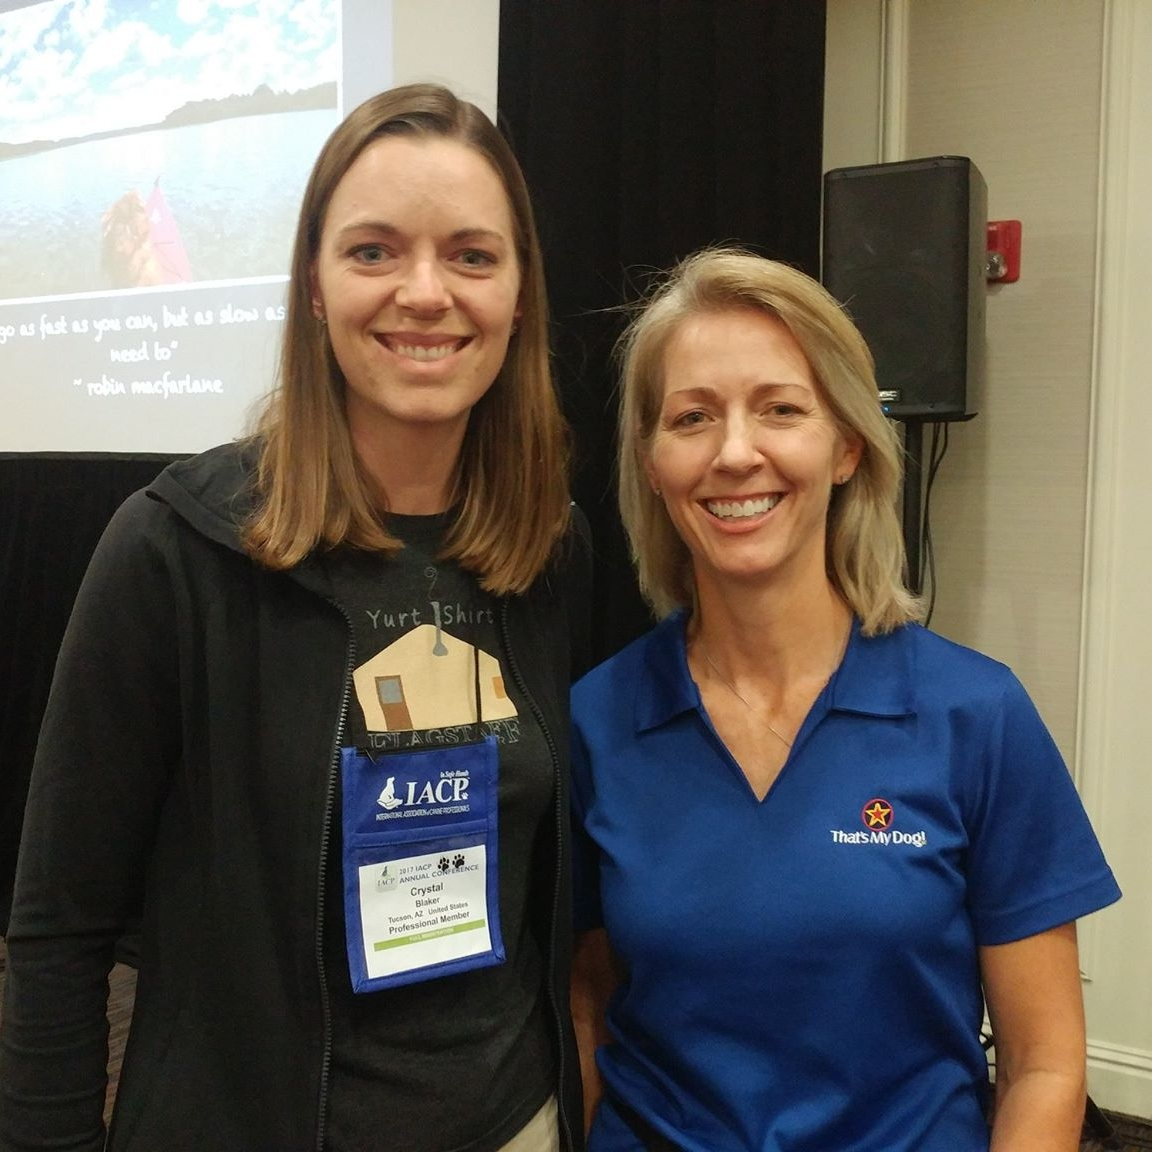 Crystal Blaker from Ruff House Dog Training & Behavior Modification meeting Robin MacFarlane at the 2017 IACP Conference in St. Louis.